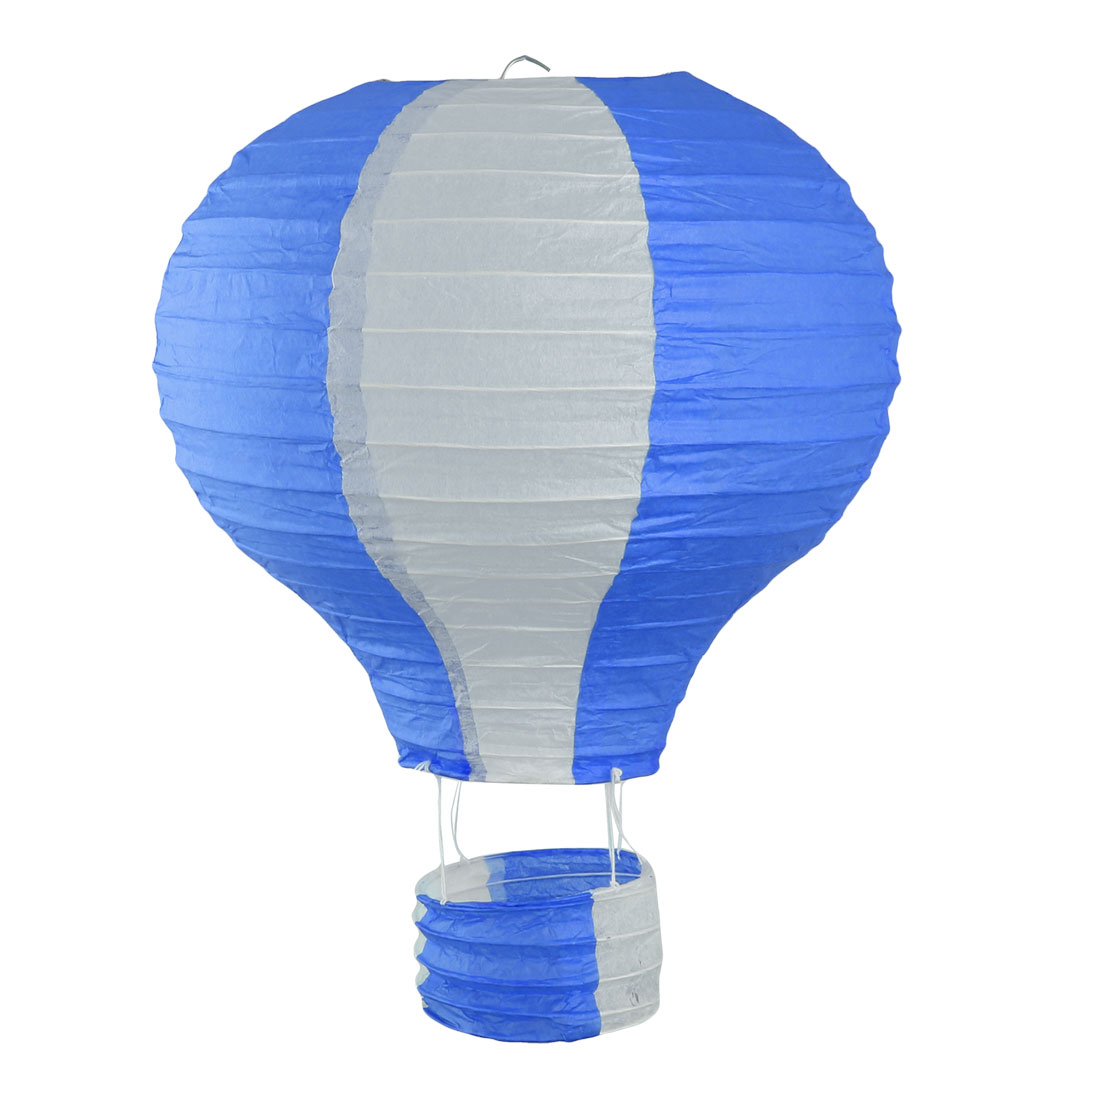 Restaurant Party Paper Lightless Hanging DIY Decor Hot Air Balloon Lantern Dark Blue White 10 Inch Dia